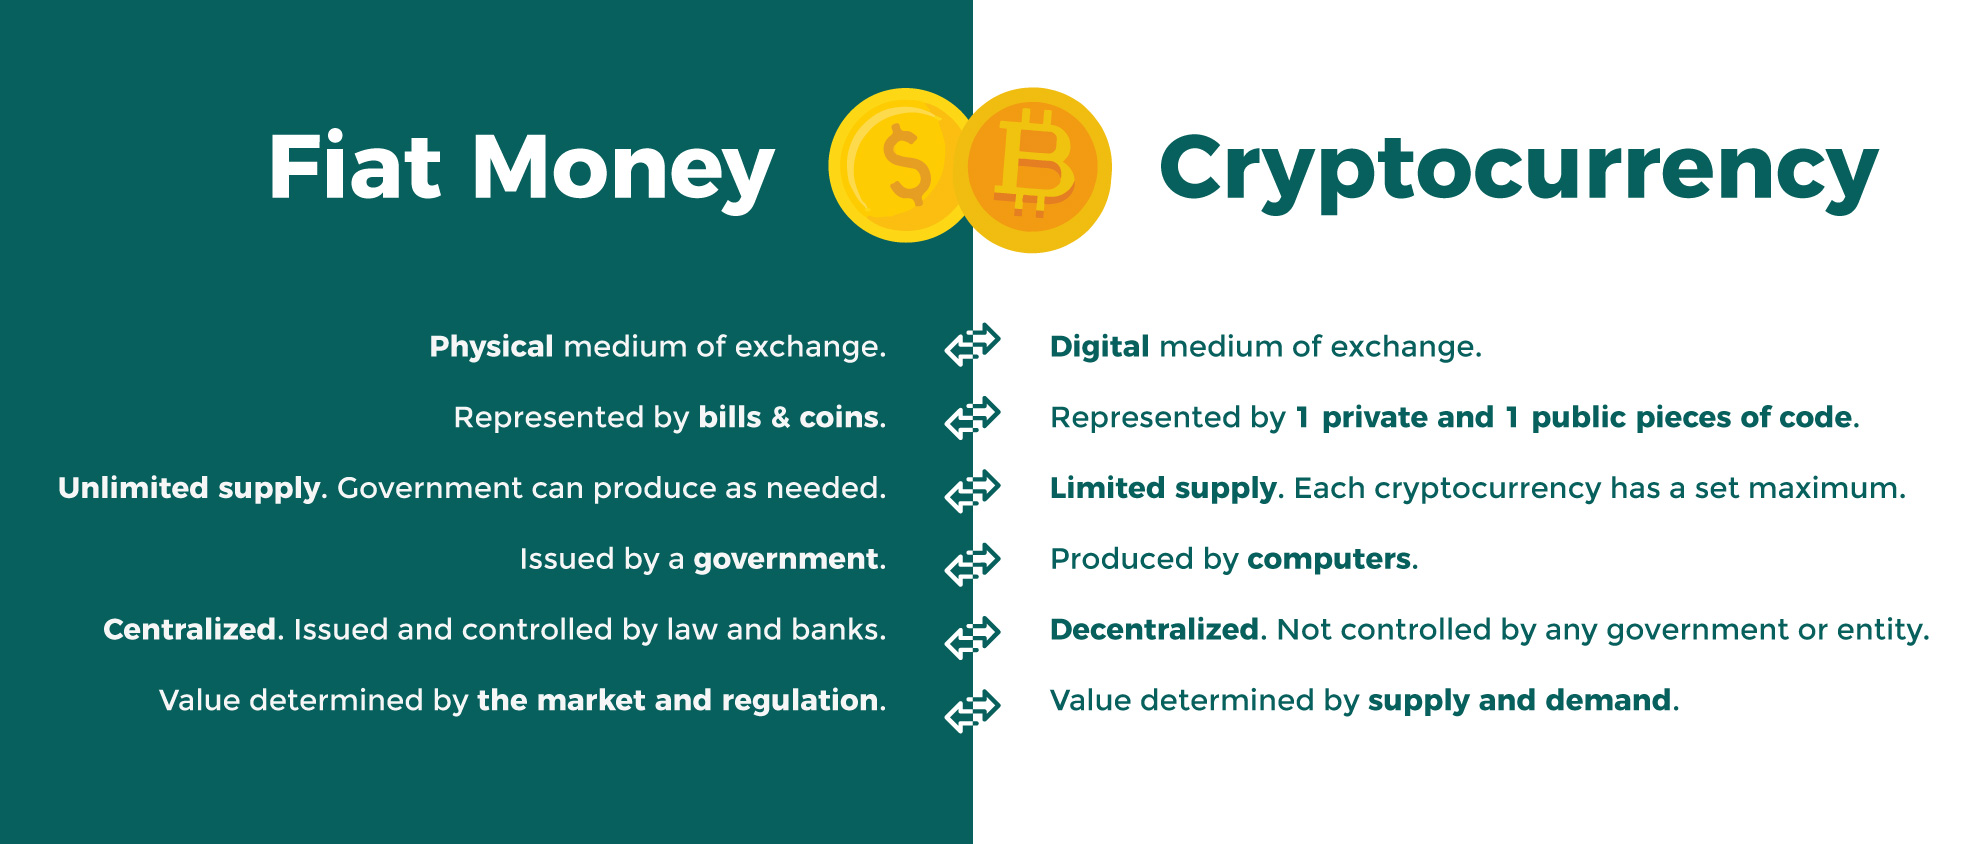 Fiat Money and Cryptocurrency